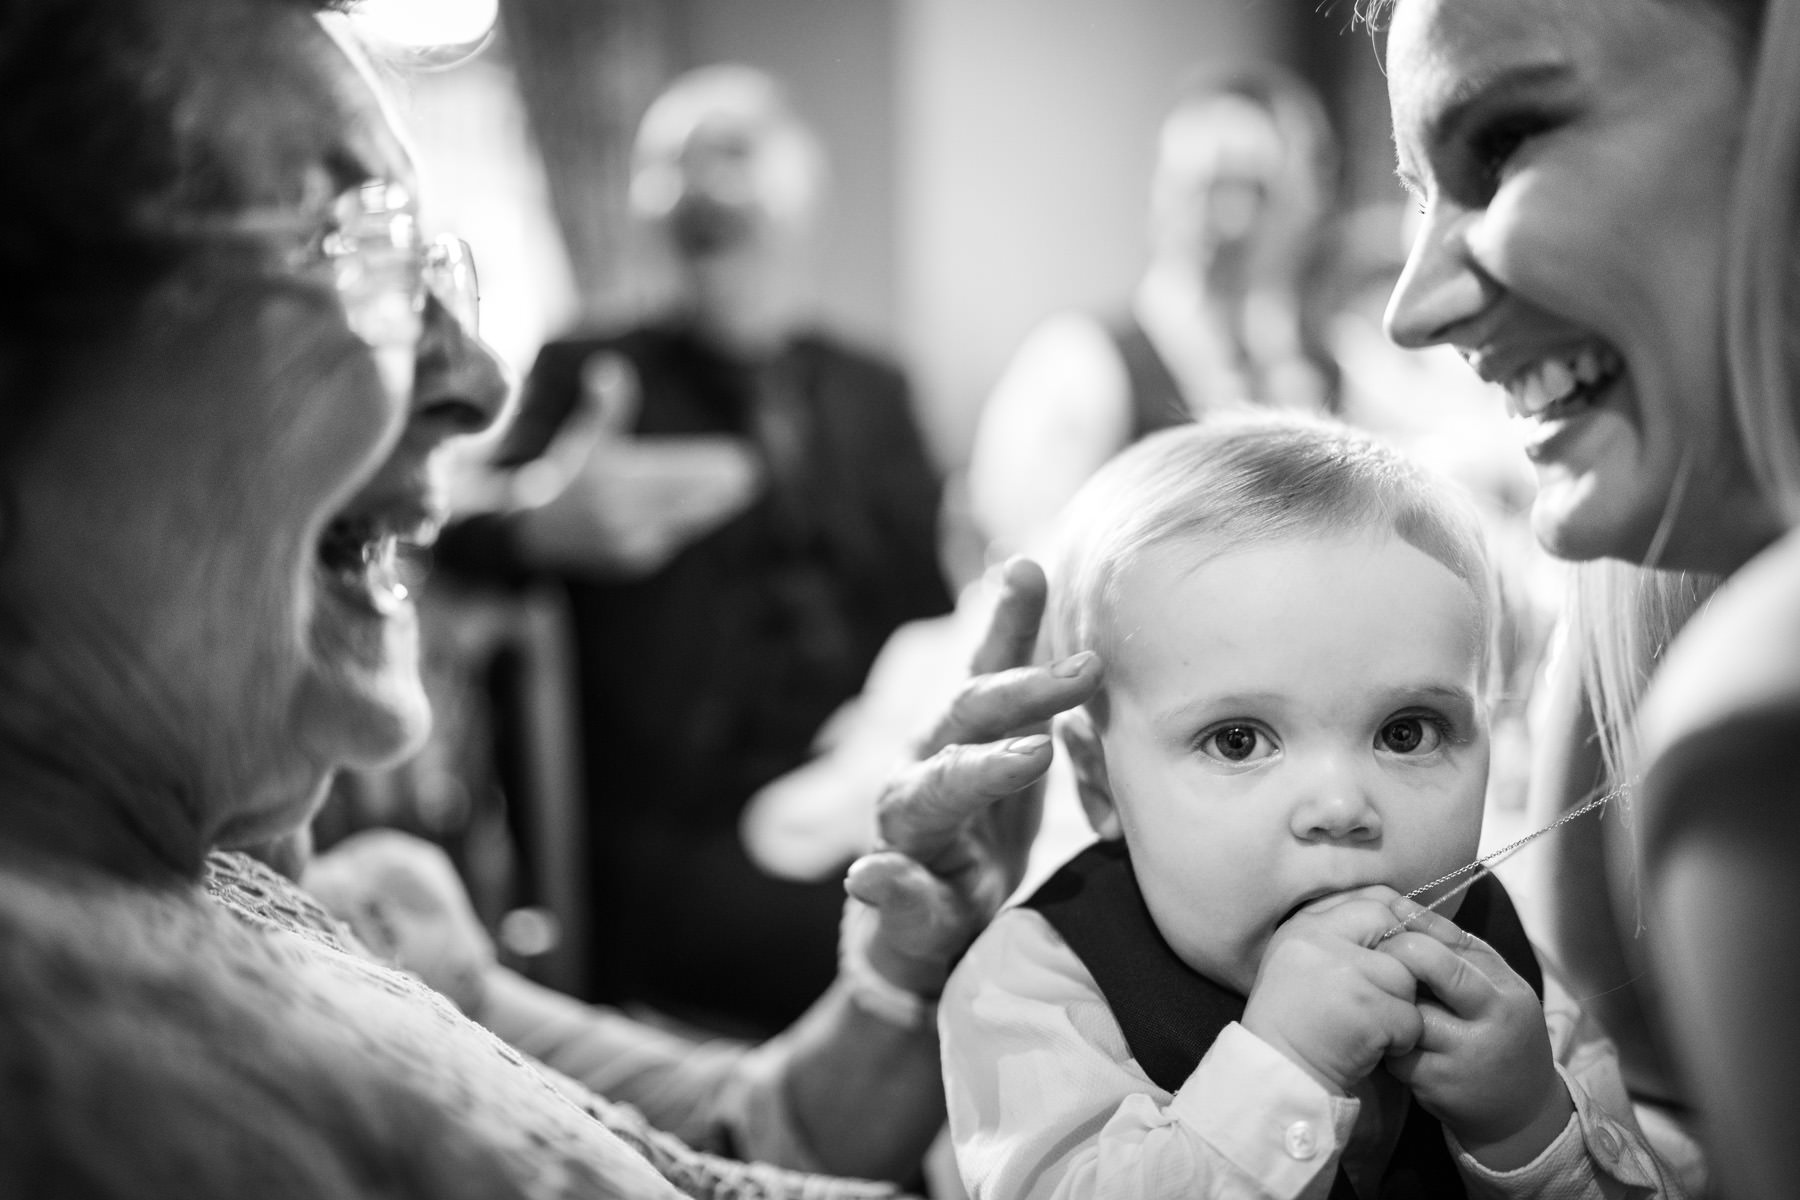 Granny with a baby at a gay wedding